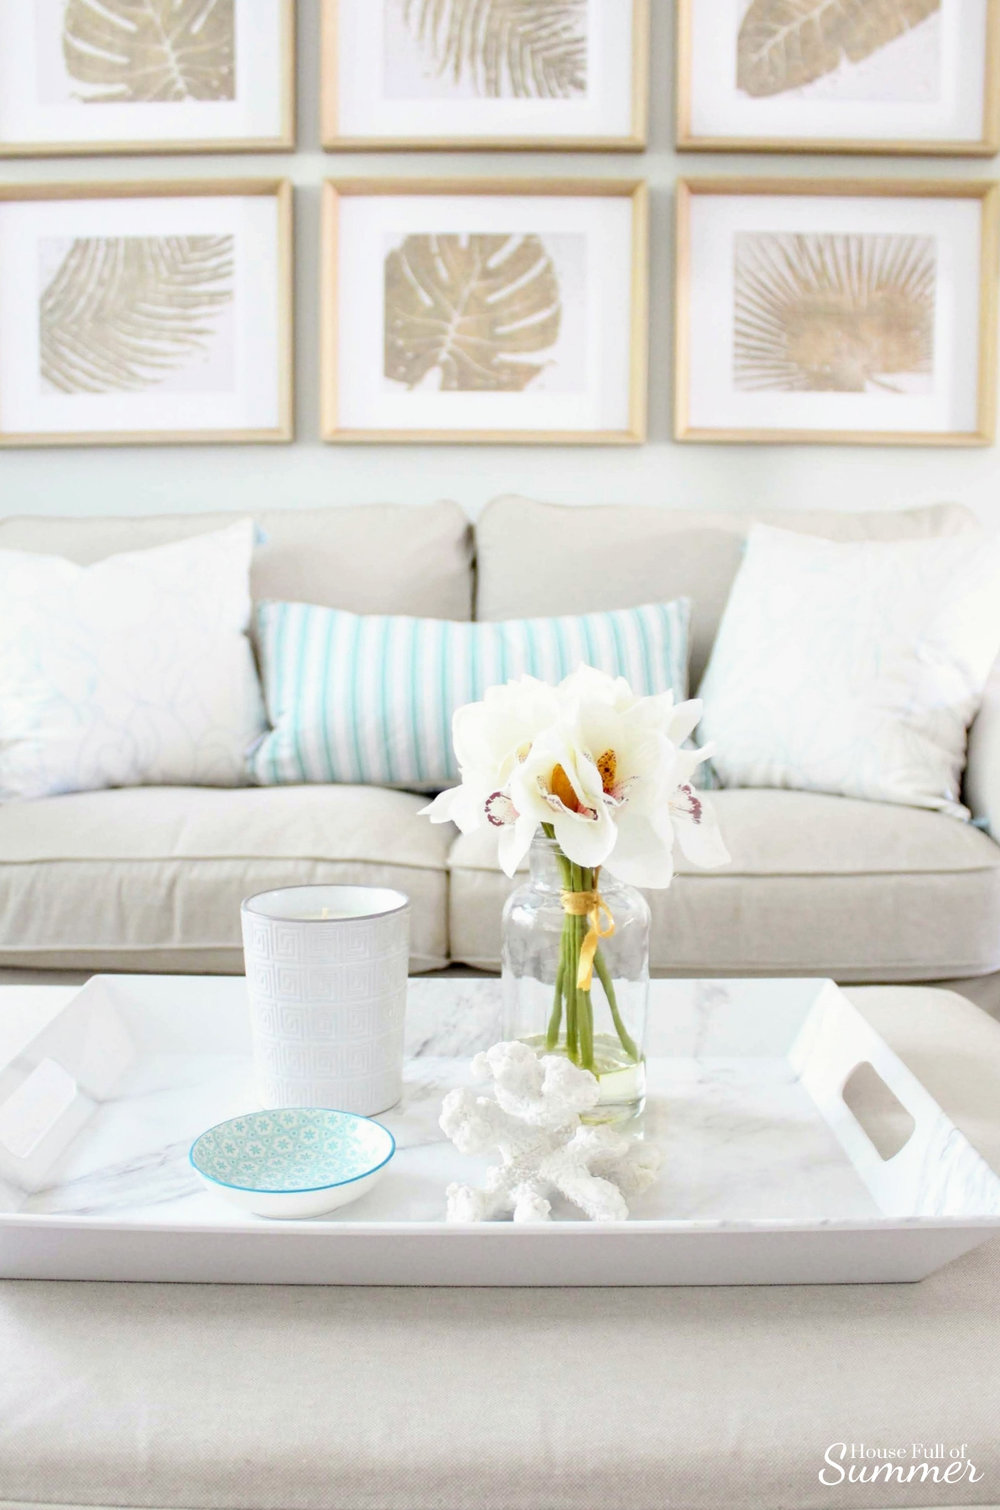 Adding Spring Color to the Living Room and Foyer | House Full of Summer - spring decor, coastal decor, neutral interior, turquoise accents, console table, round mirror, fiddle leaf fig, decorating with palm fronds, entryway, lighting, Florida home decor ideas, slip covered furniture, jute rug, beach house style, cane bar cart, DIY spray paint, budget decor, rattan bar cart, bamboo cart, accent table, spring home tour, chinoiserie chic, coffee table styling, ottoman, gallery wall